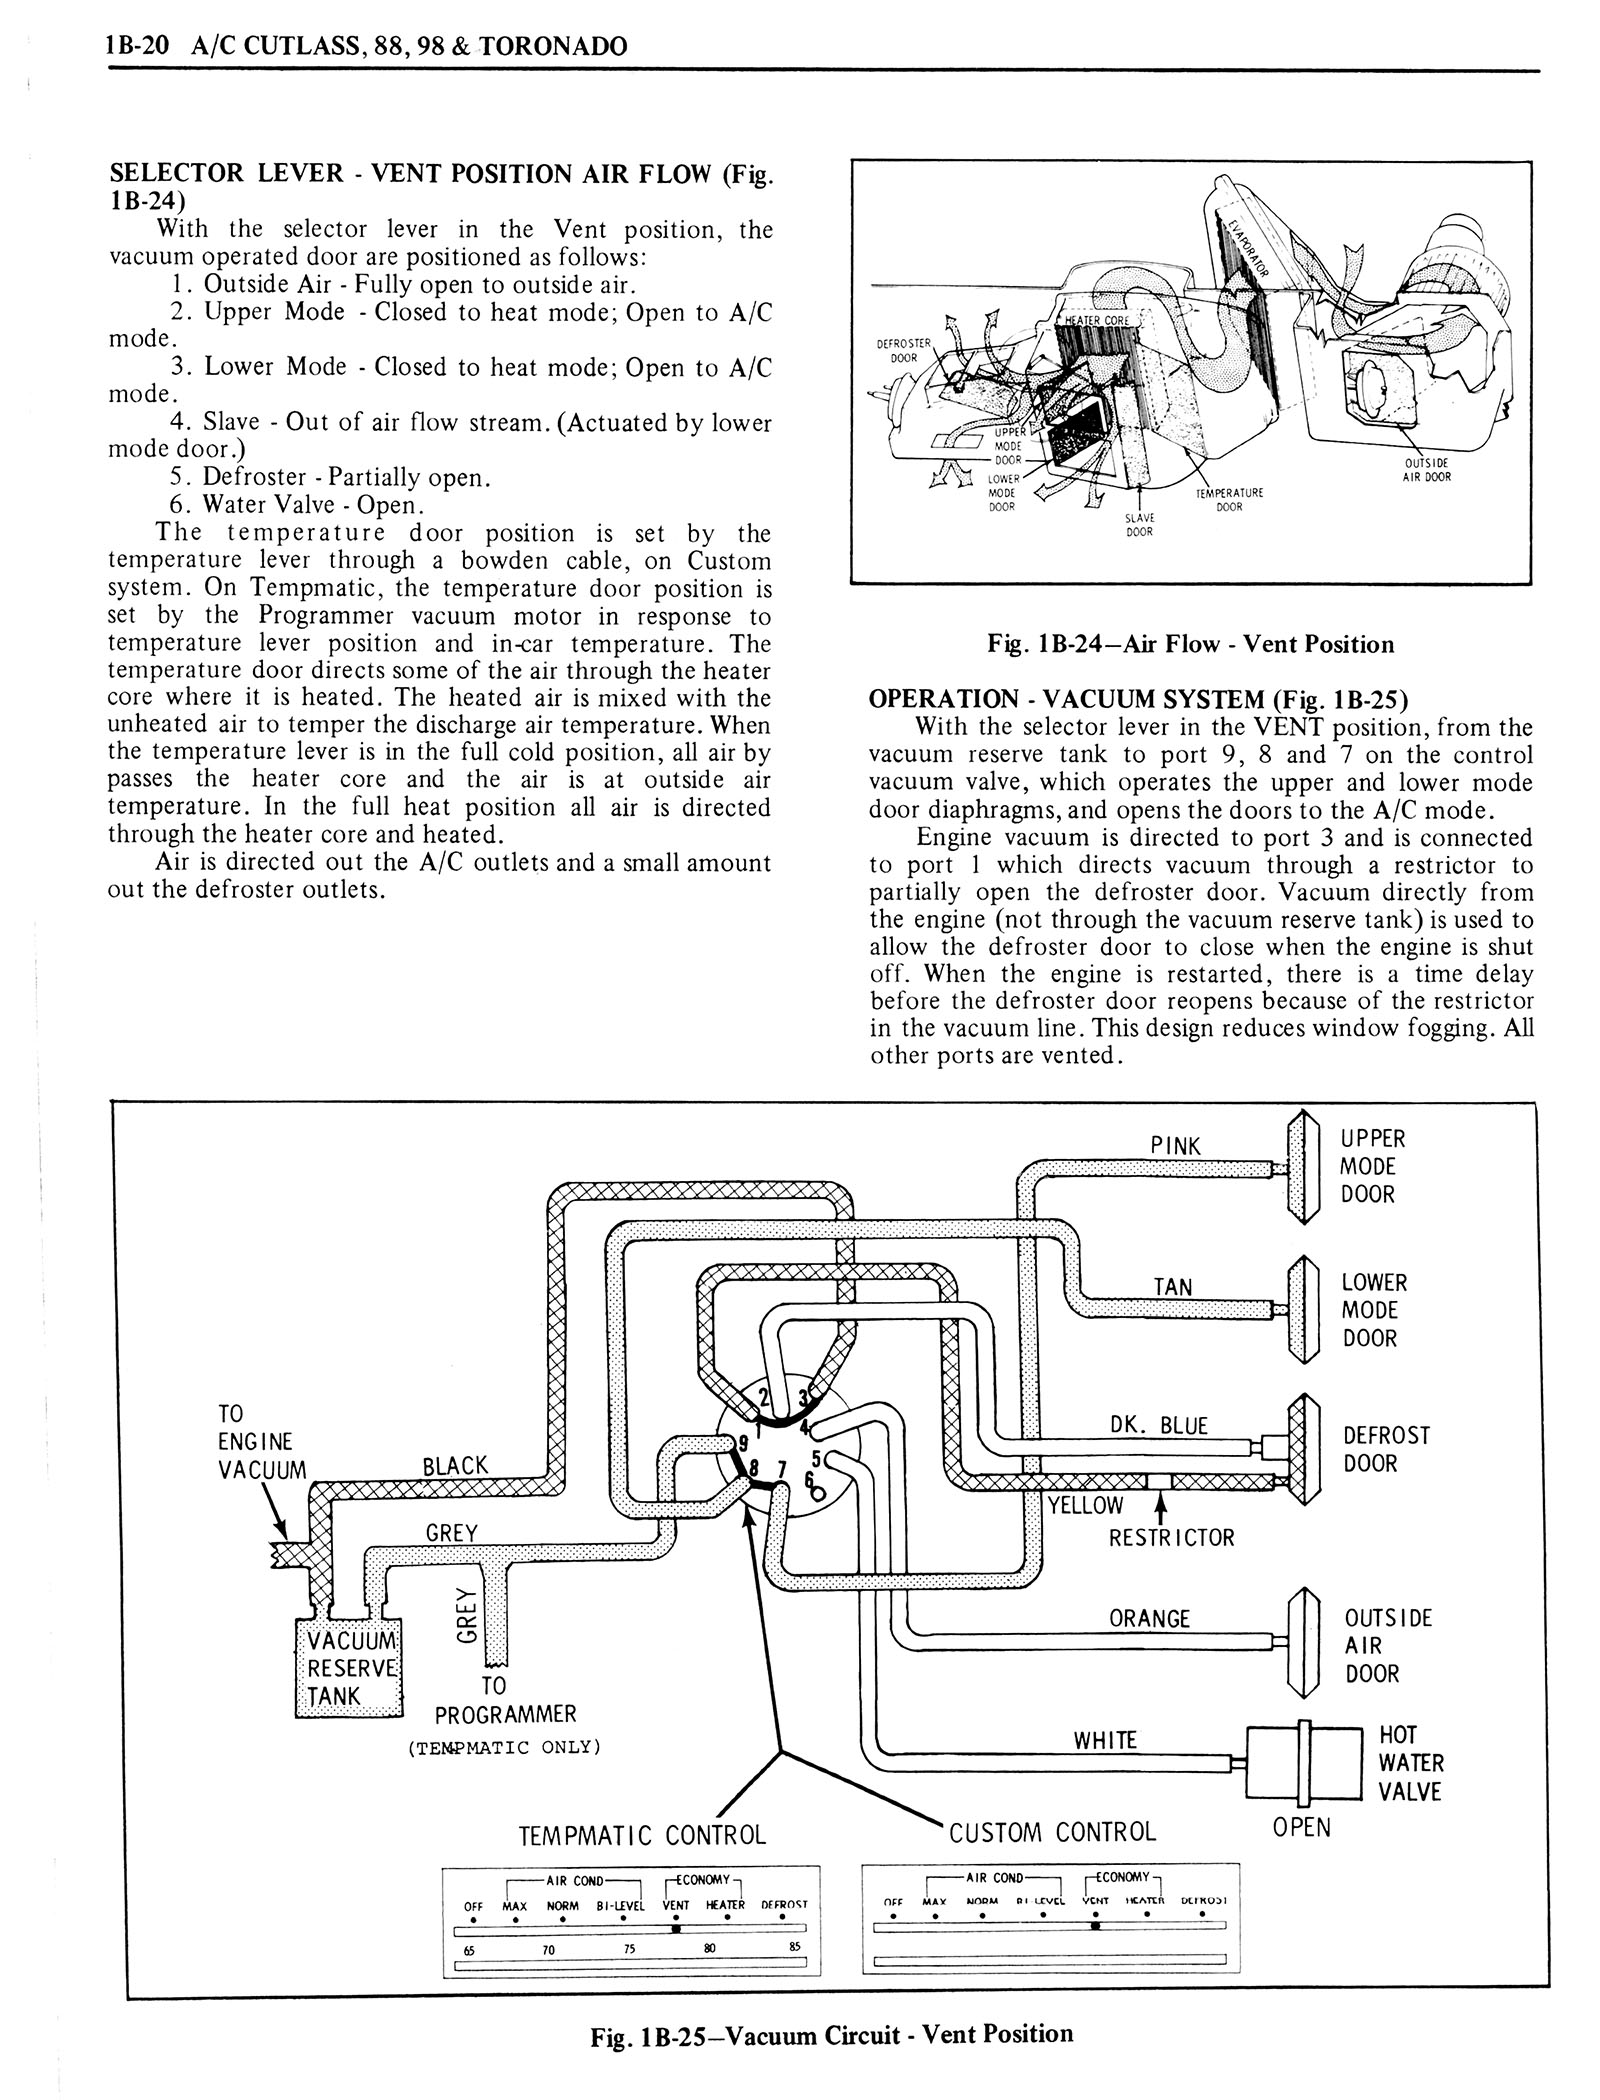 1976 Oldsmobile Service Manual page 118 of 1390